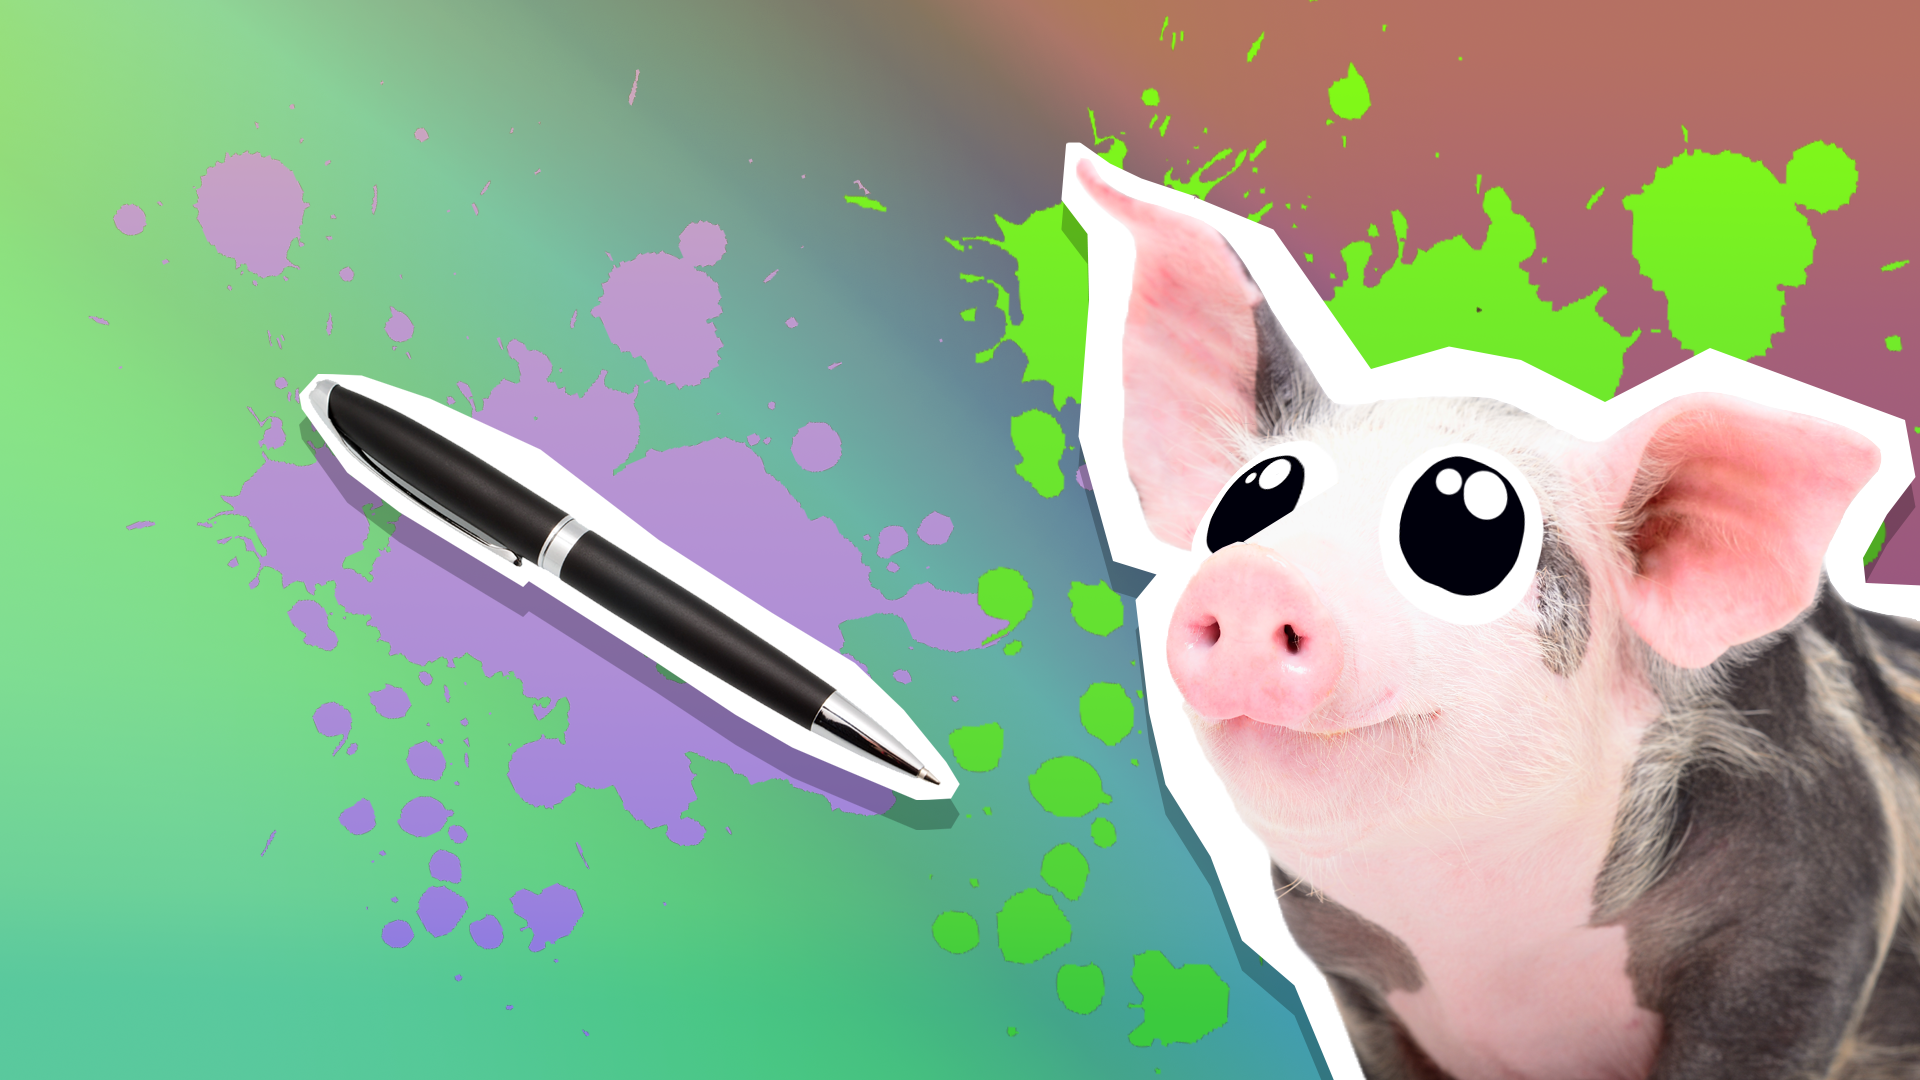 A smiling pig and a black ballpoint pen